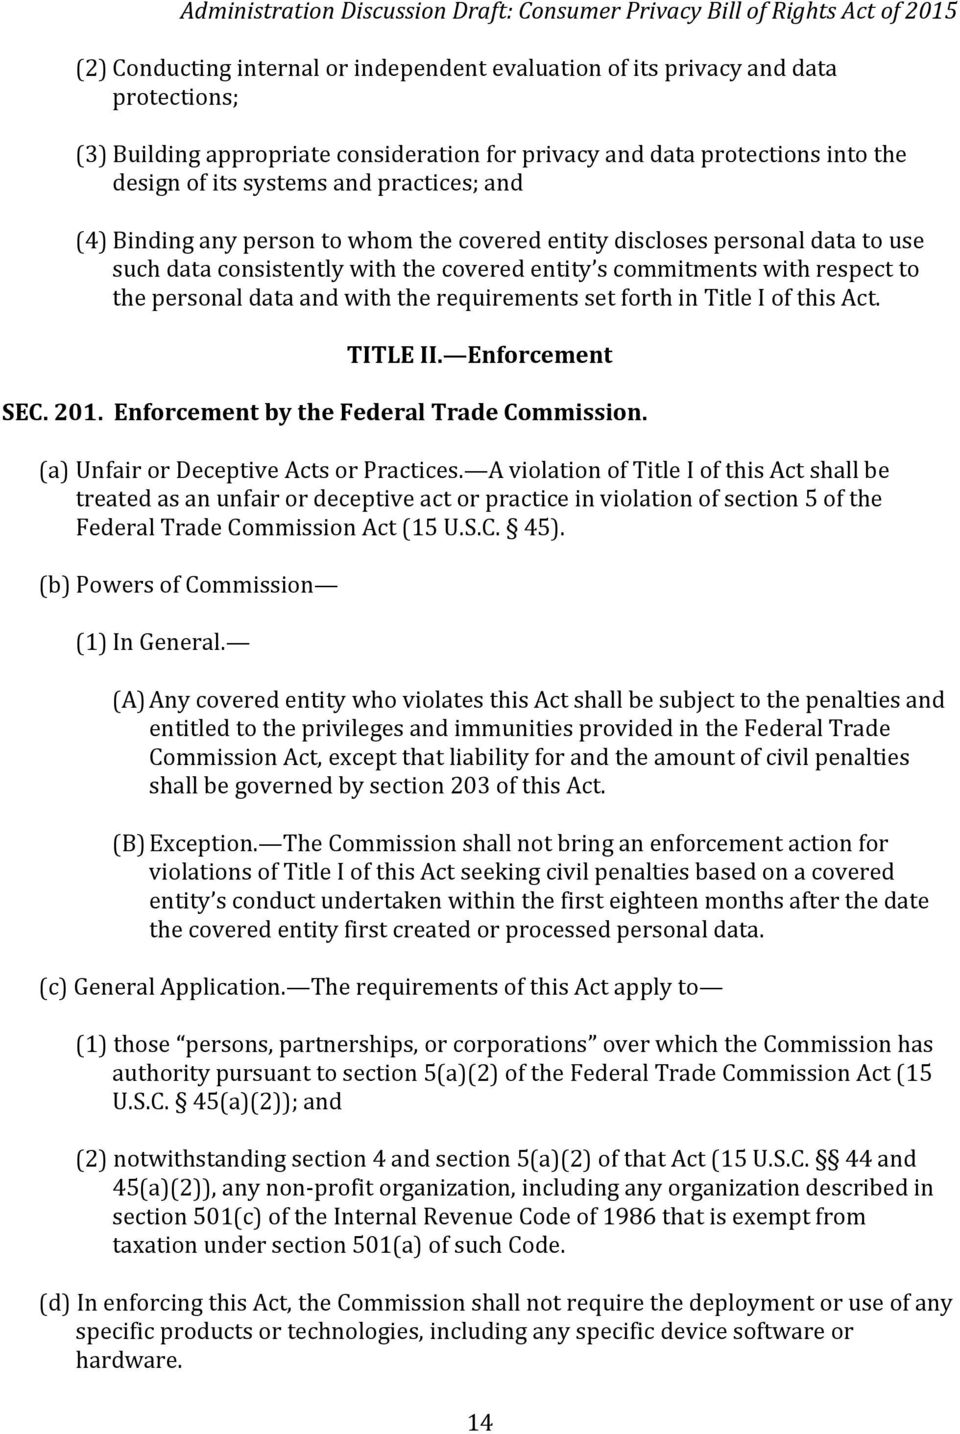 the requirements set forth in Title I of this Act. TITLE II. Enforcement SEC. 201. Enforcement by the Federal Trade Commission. (a) Unfair or Deceptive Acts or Practices.